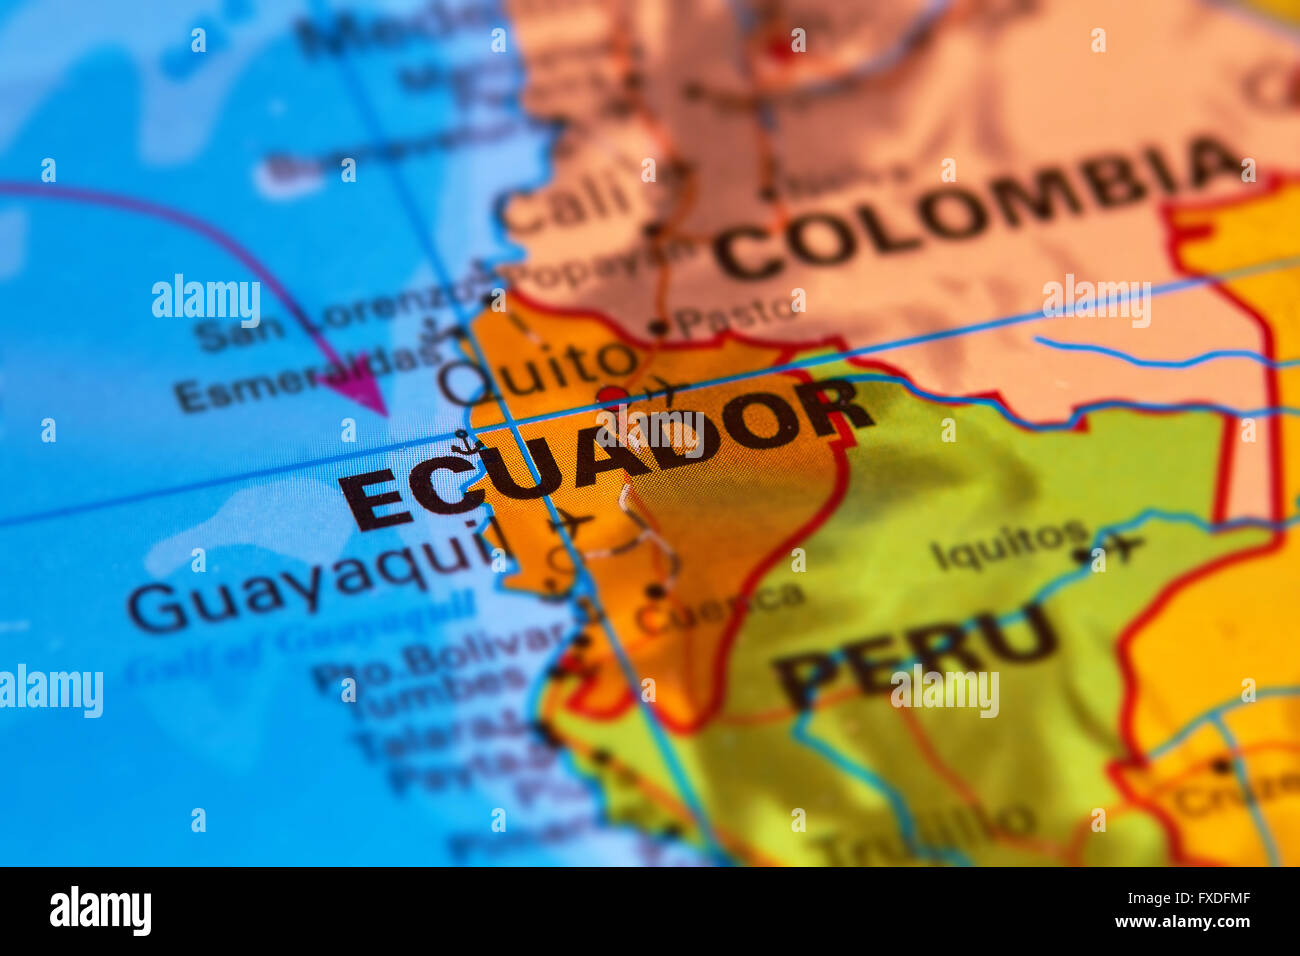 Ecuador and Capital City Quito on the World Map Stock Photo